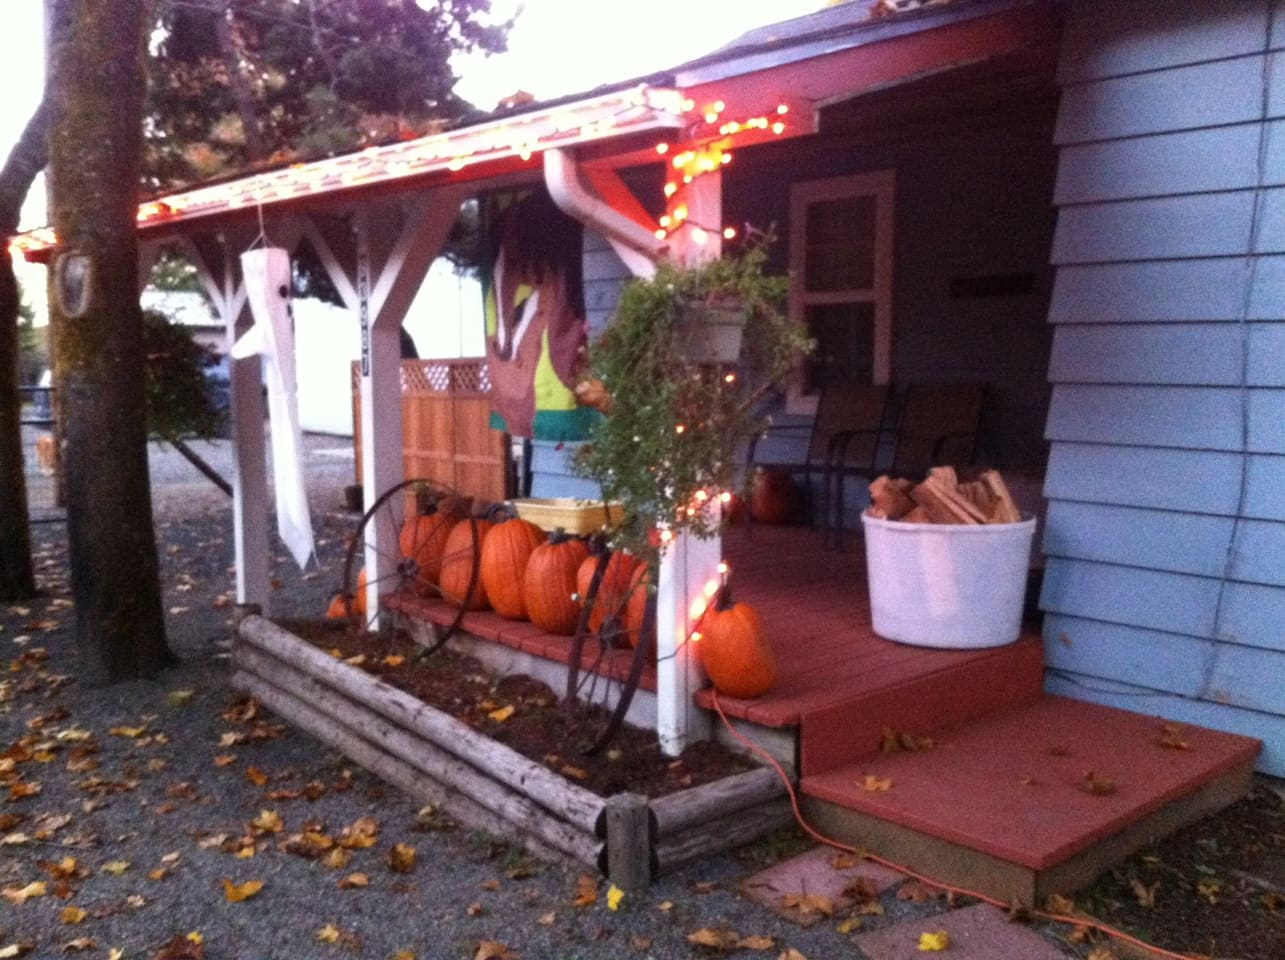 Fall fun in the country with pumpkins and wood fires